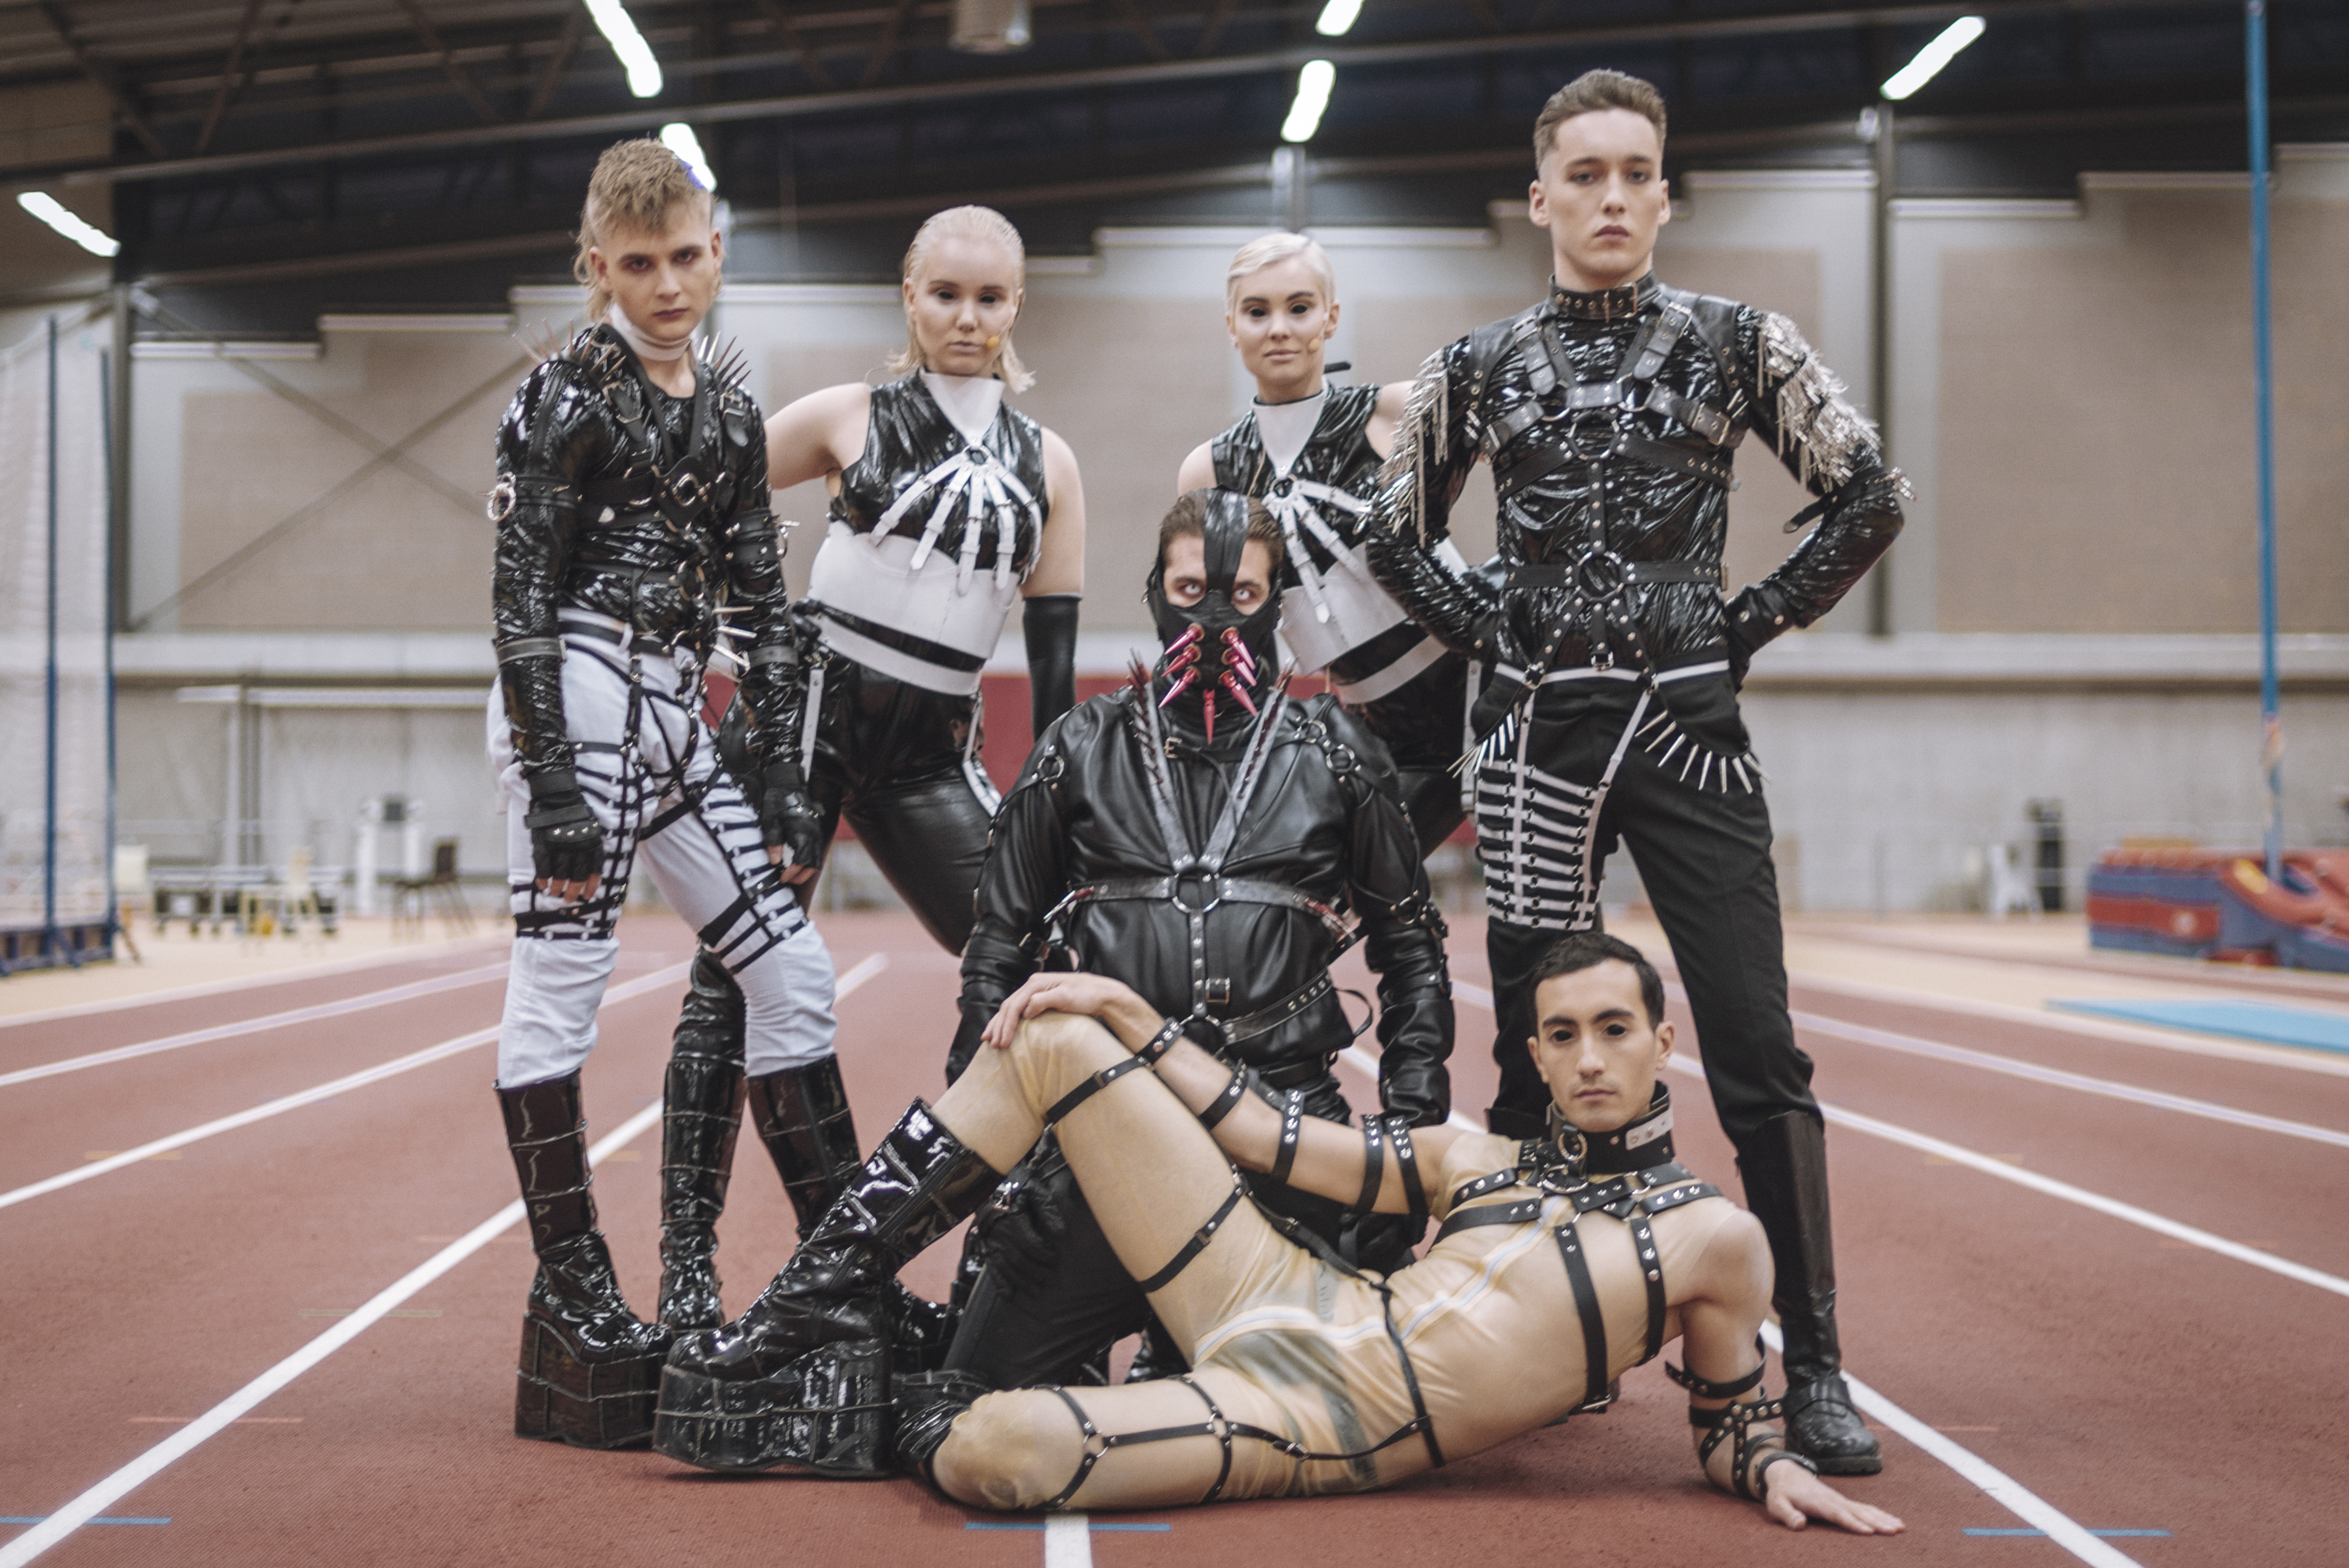 Iceland's Hatari: 'We're the pink elephant in the room'